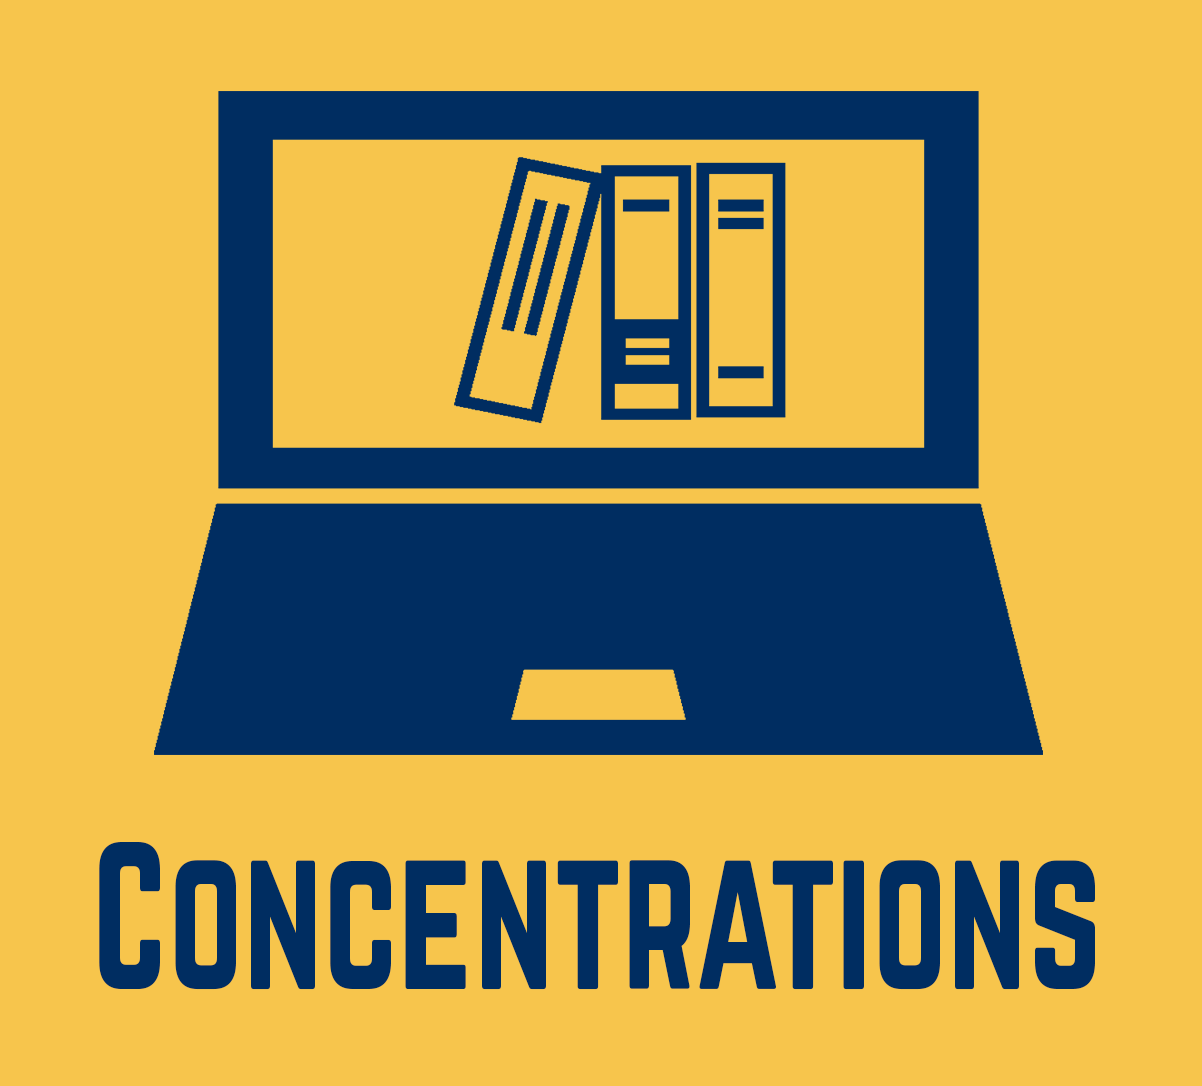 image for Concentrations